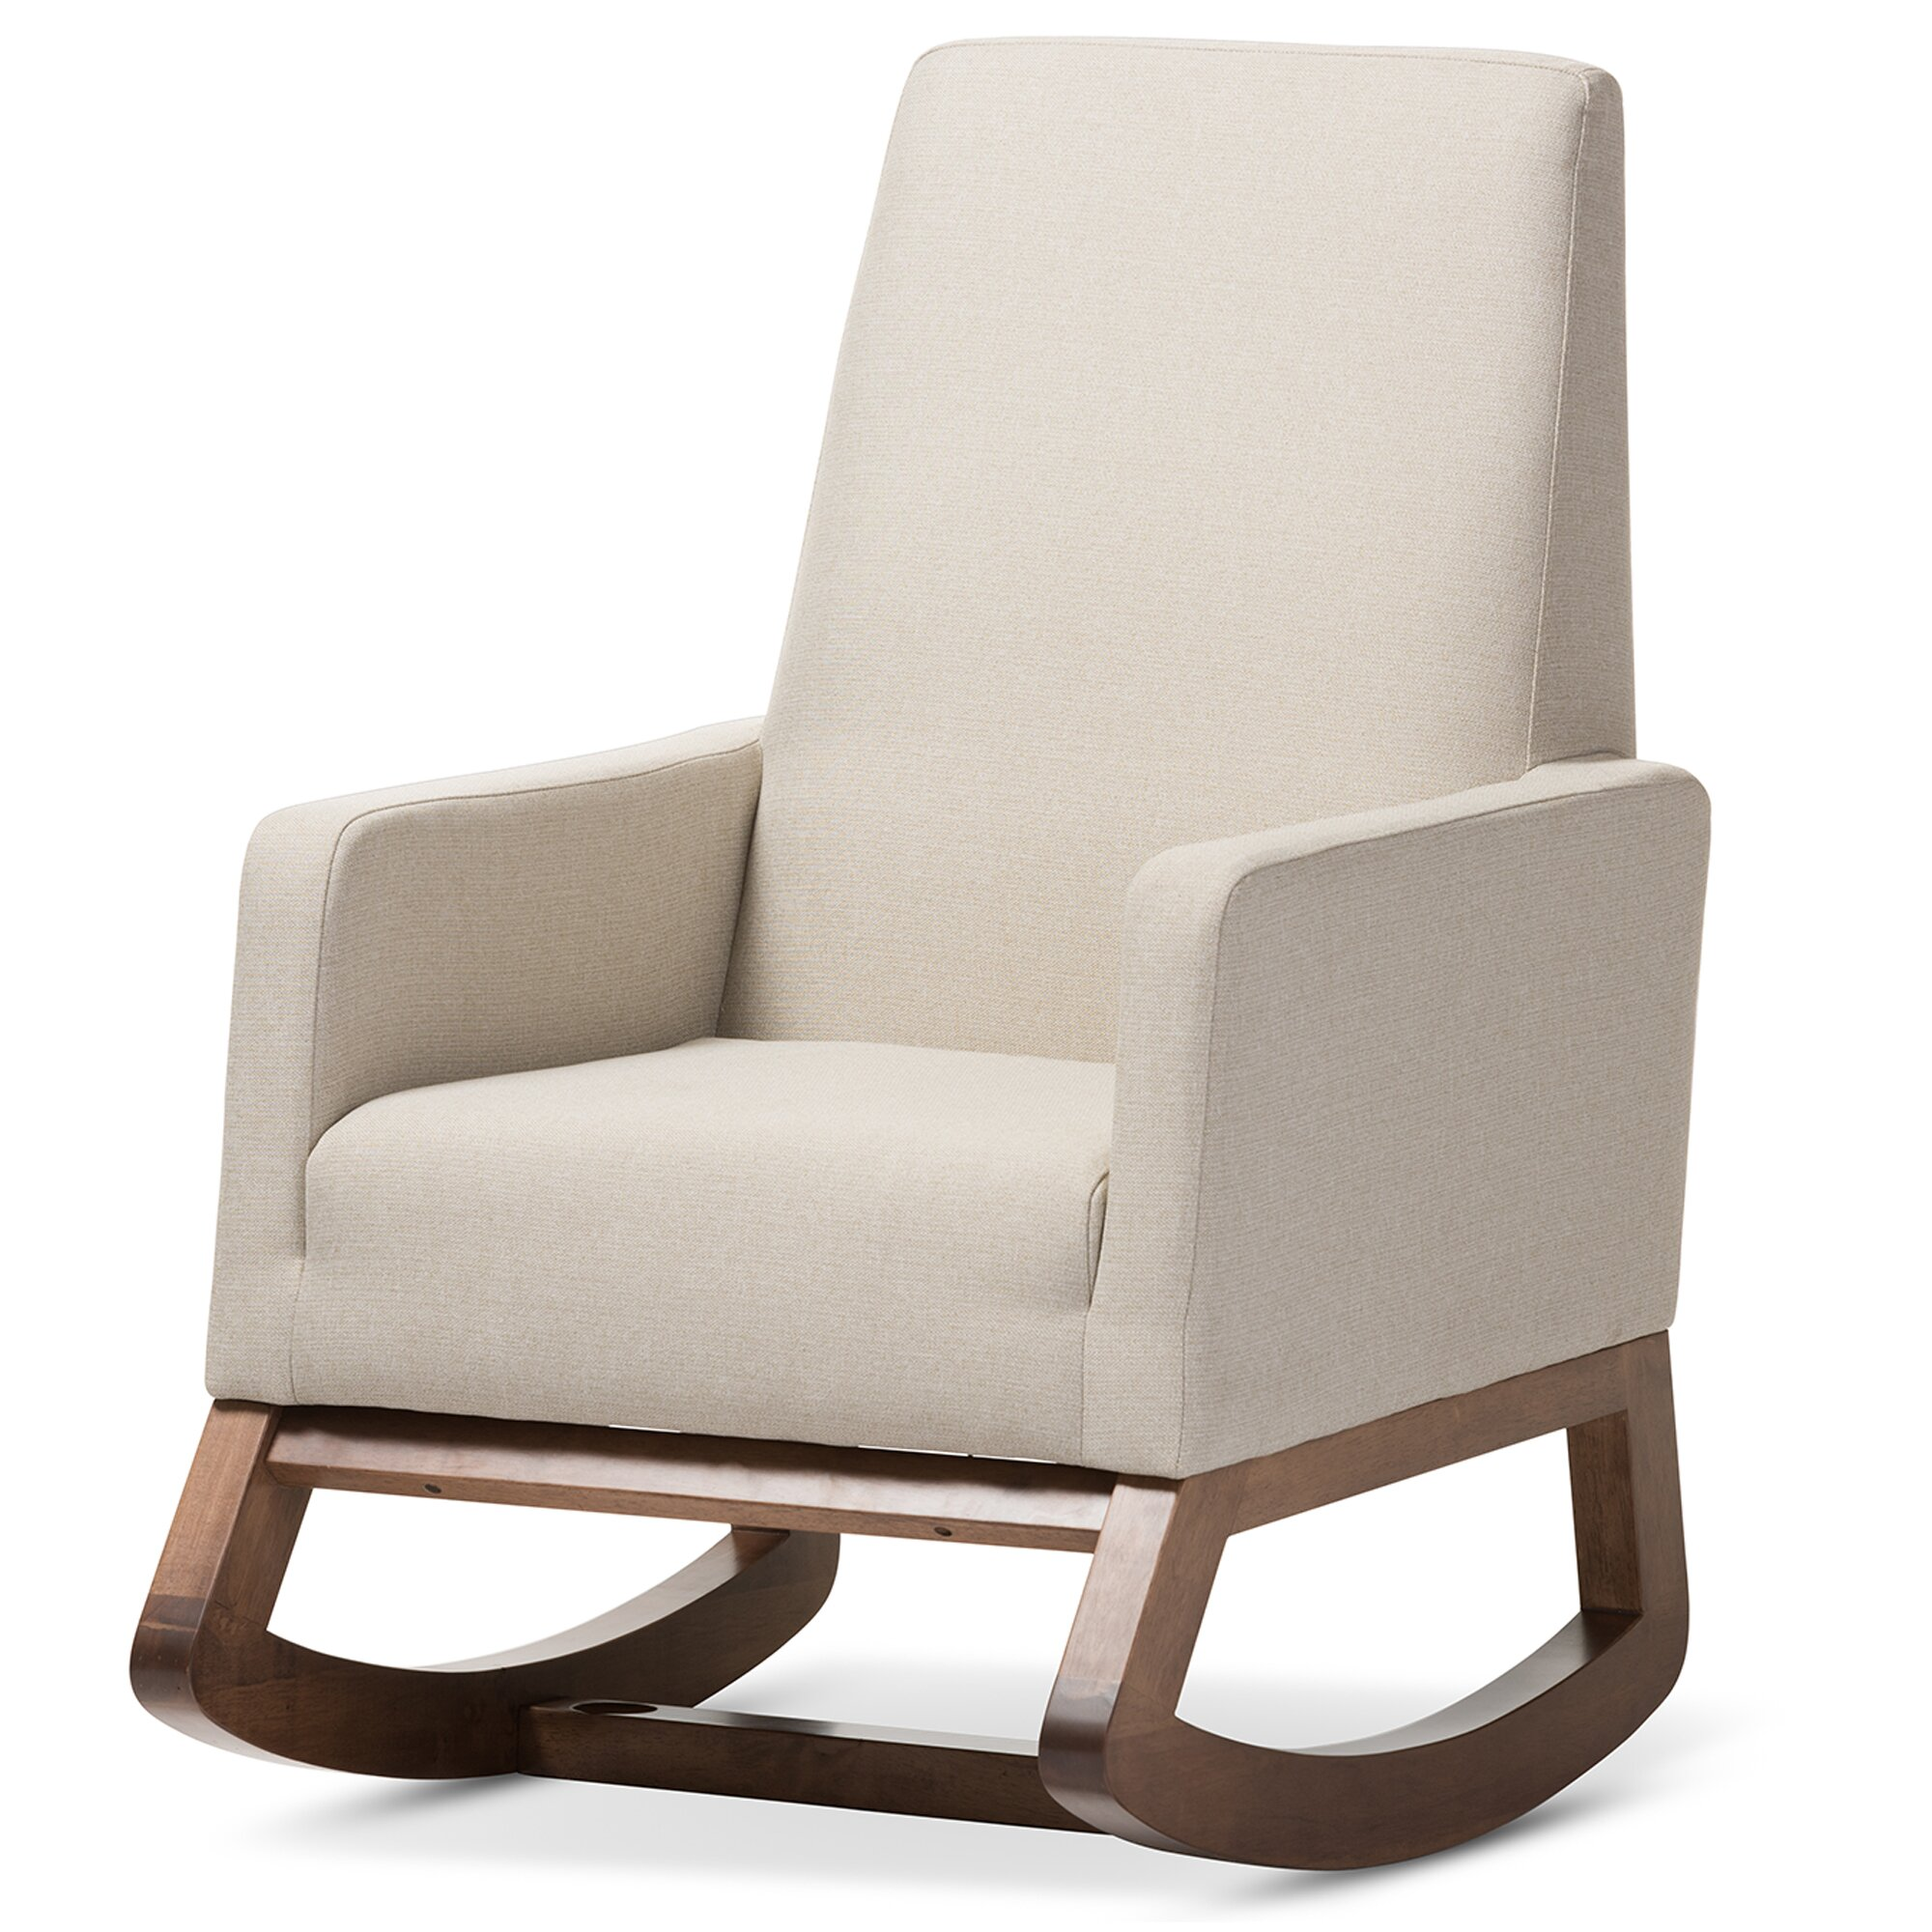 Superb img of Sey Mid Century Walnut Modern Rocking Chair By Chair Golime.co with #3C2A20 color and 2000x2000 pixels